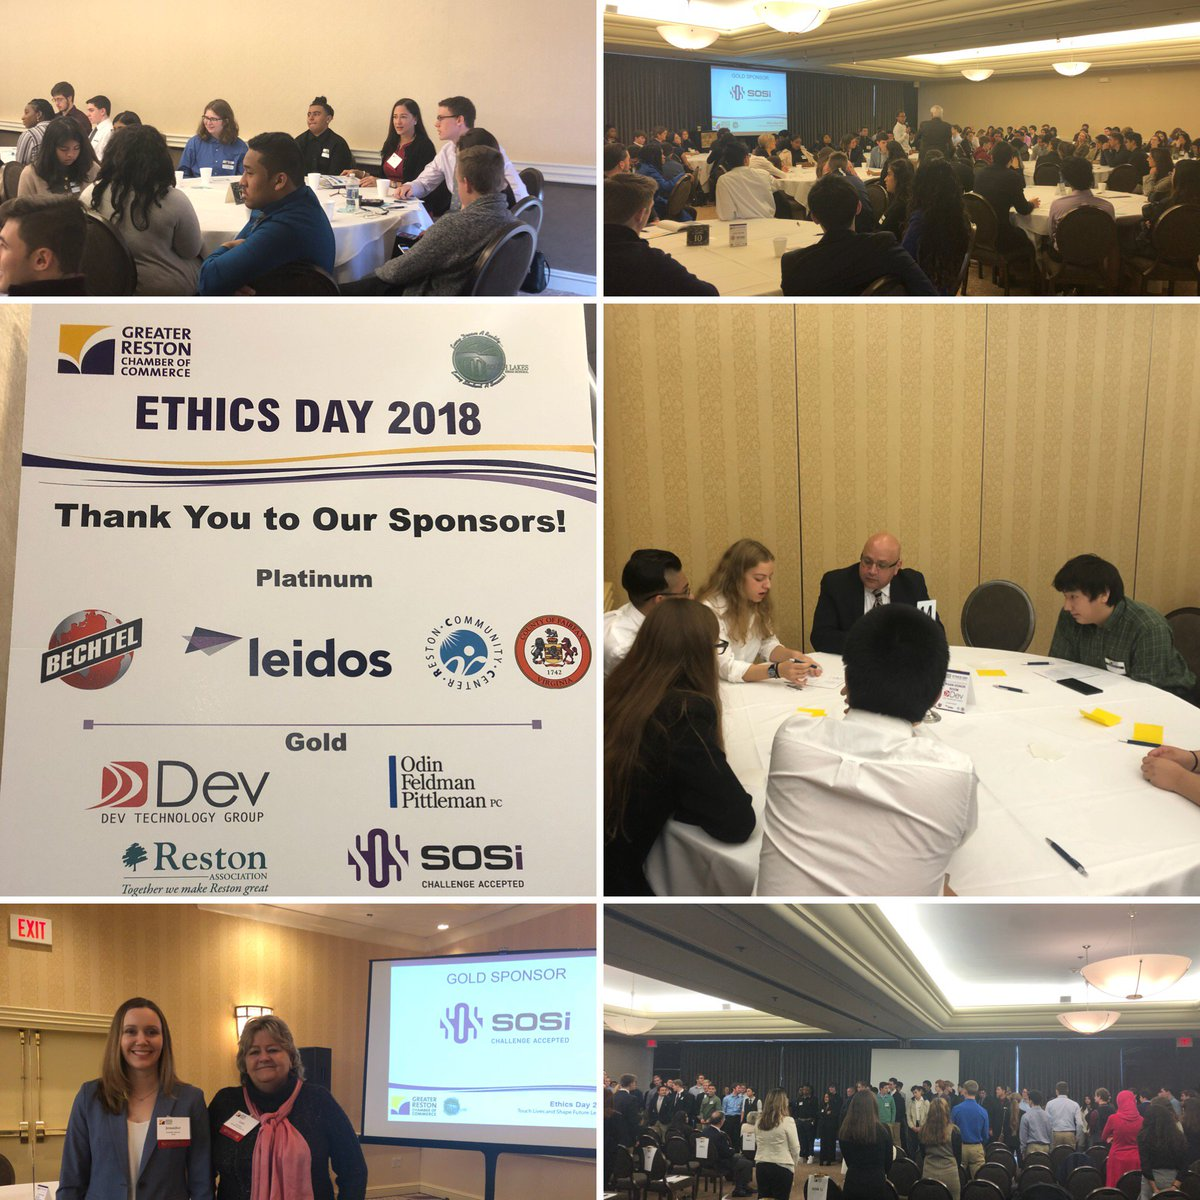 .@SOSi_HQ team members participated in @RestonChamber Ethics Day where the entire South Lakes HS senior class spends the day learning about ethical decision making. SOSi, a company that lives its ethics and values every day, is a proud sponsor of this event. #ChallengeAccepted